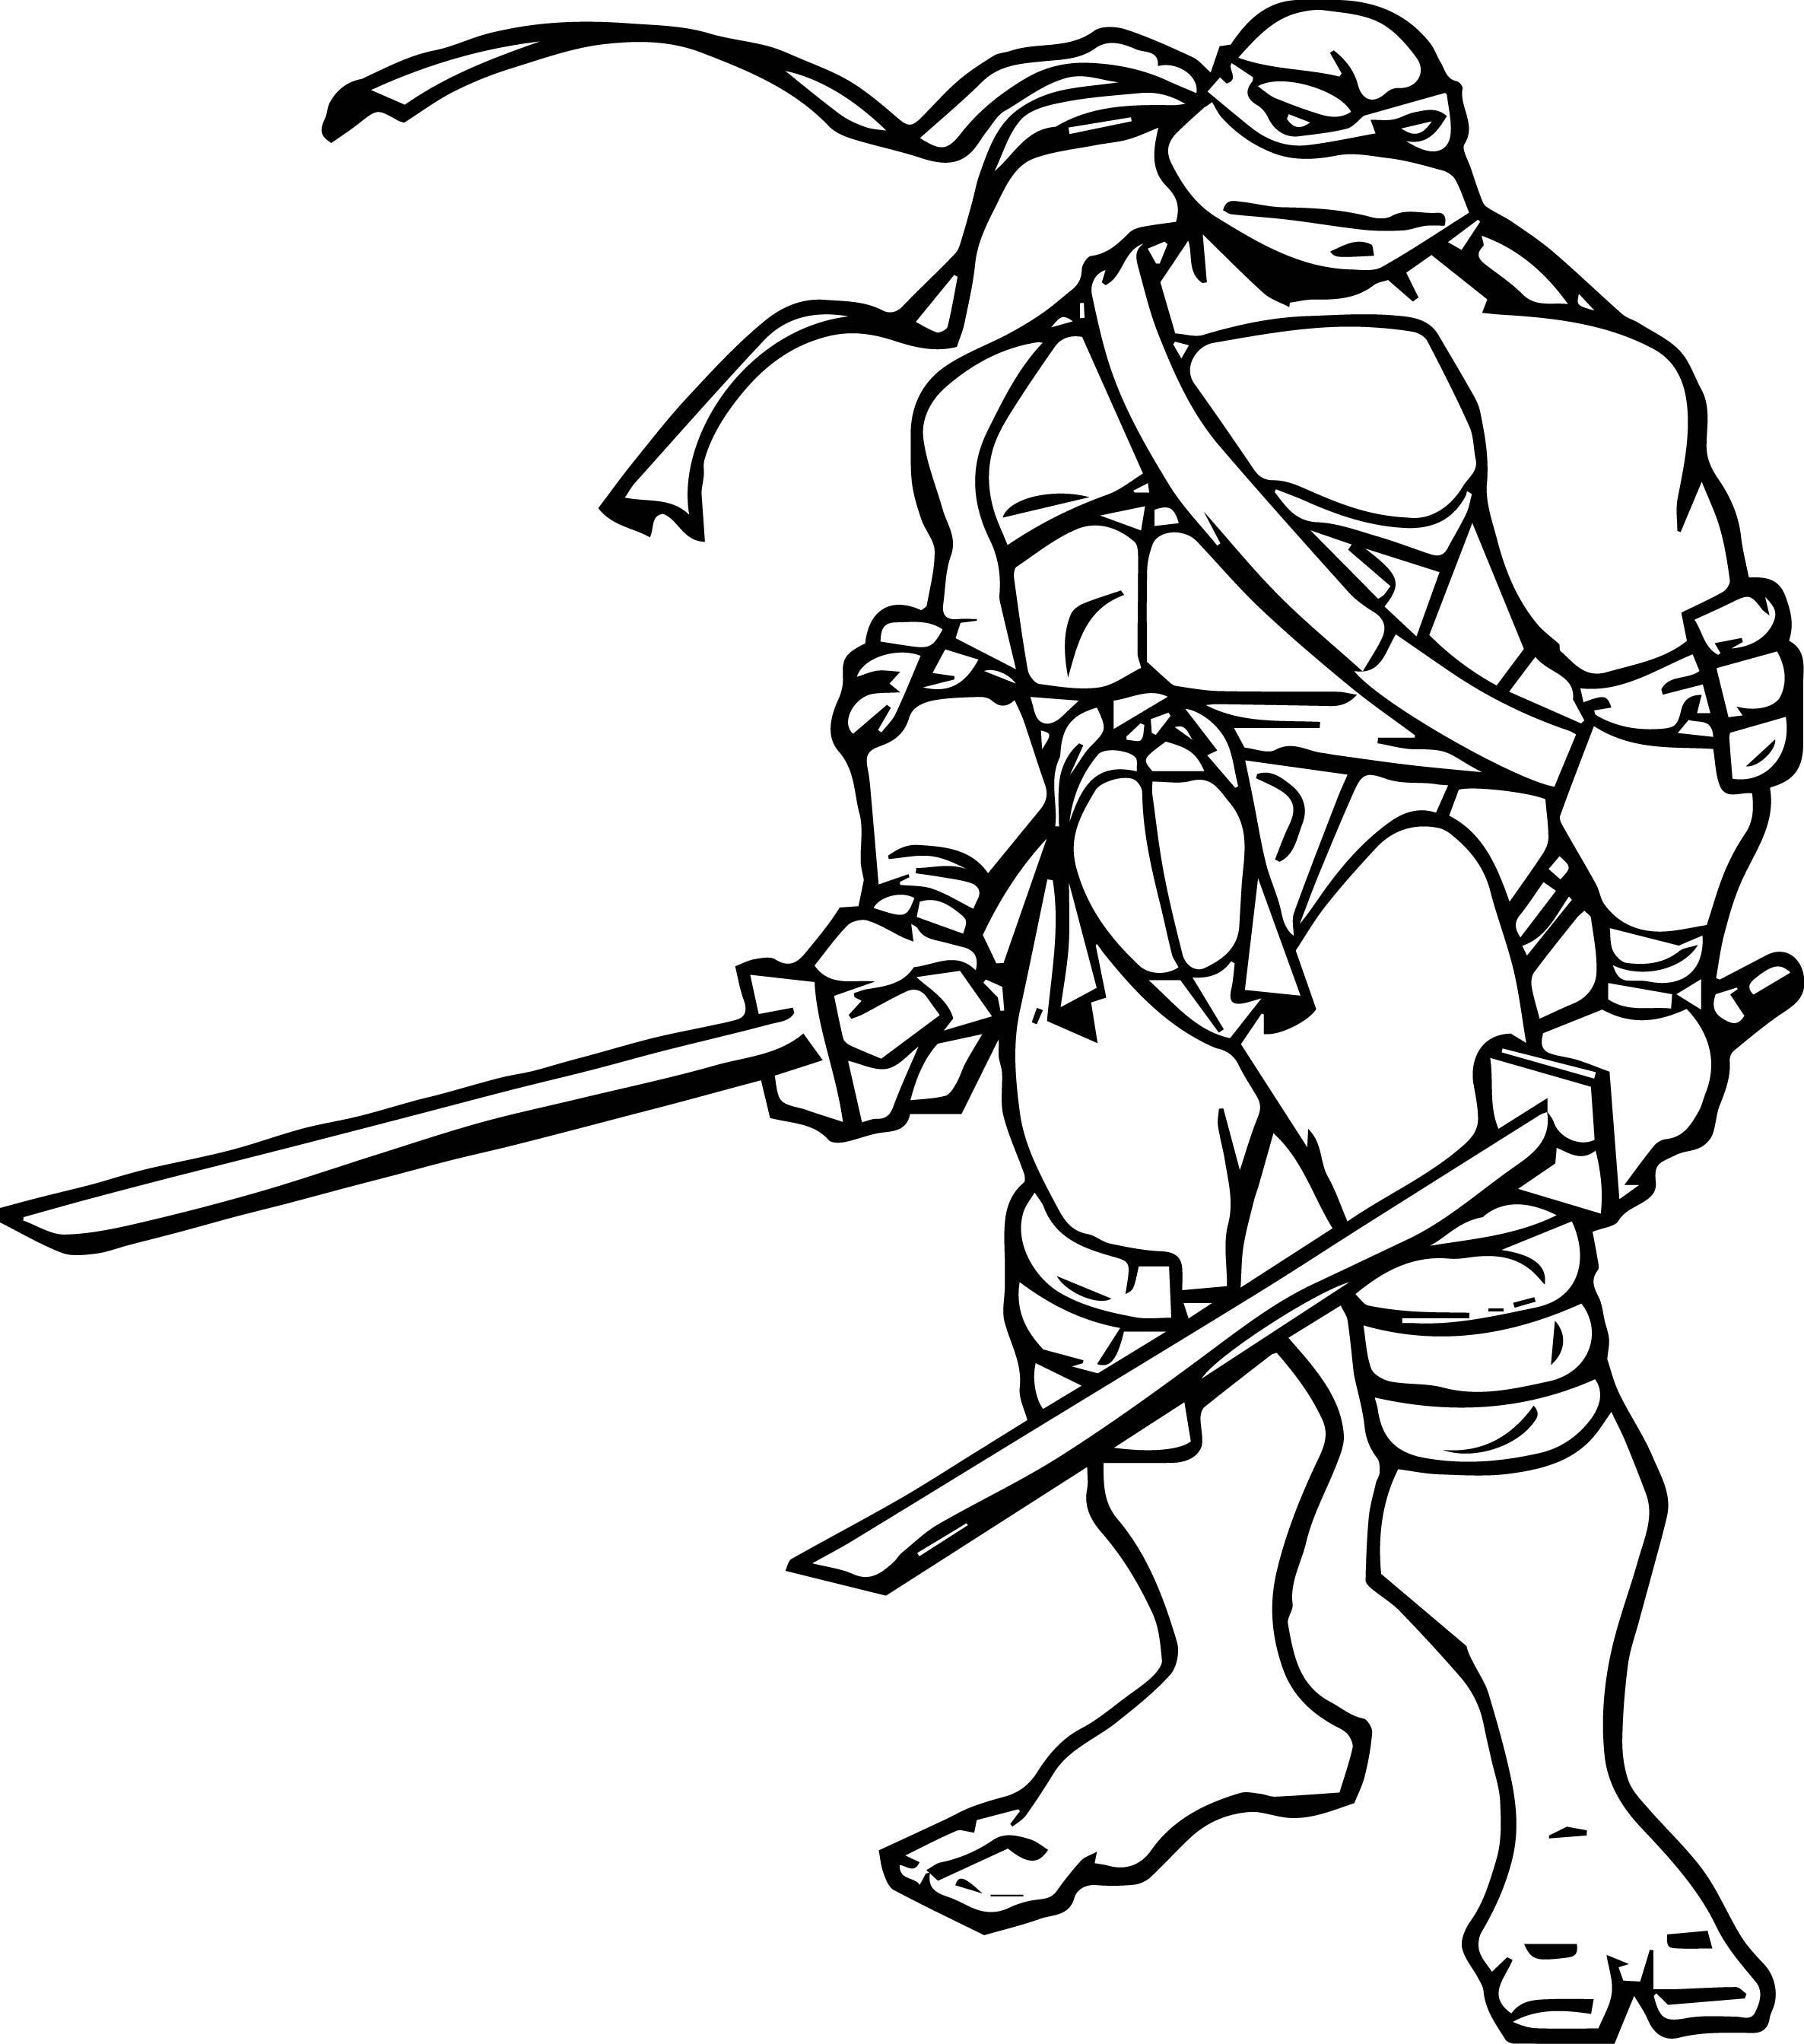 Ninja Turtle Two Blade Coloring Page Ninja Turtle Coloring Pages